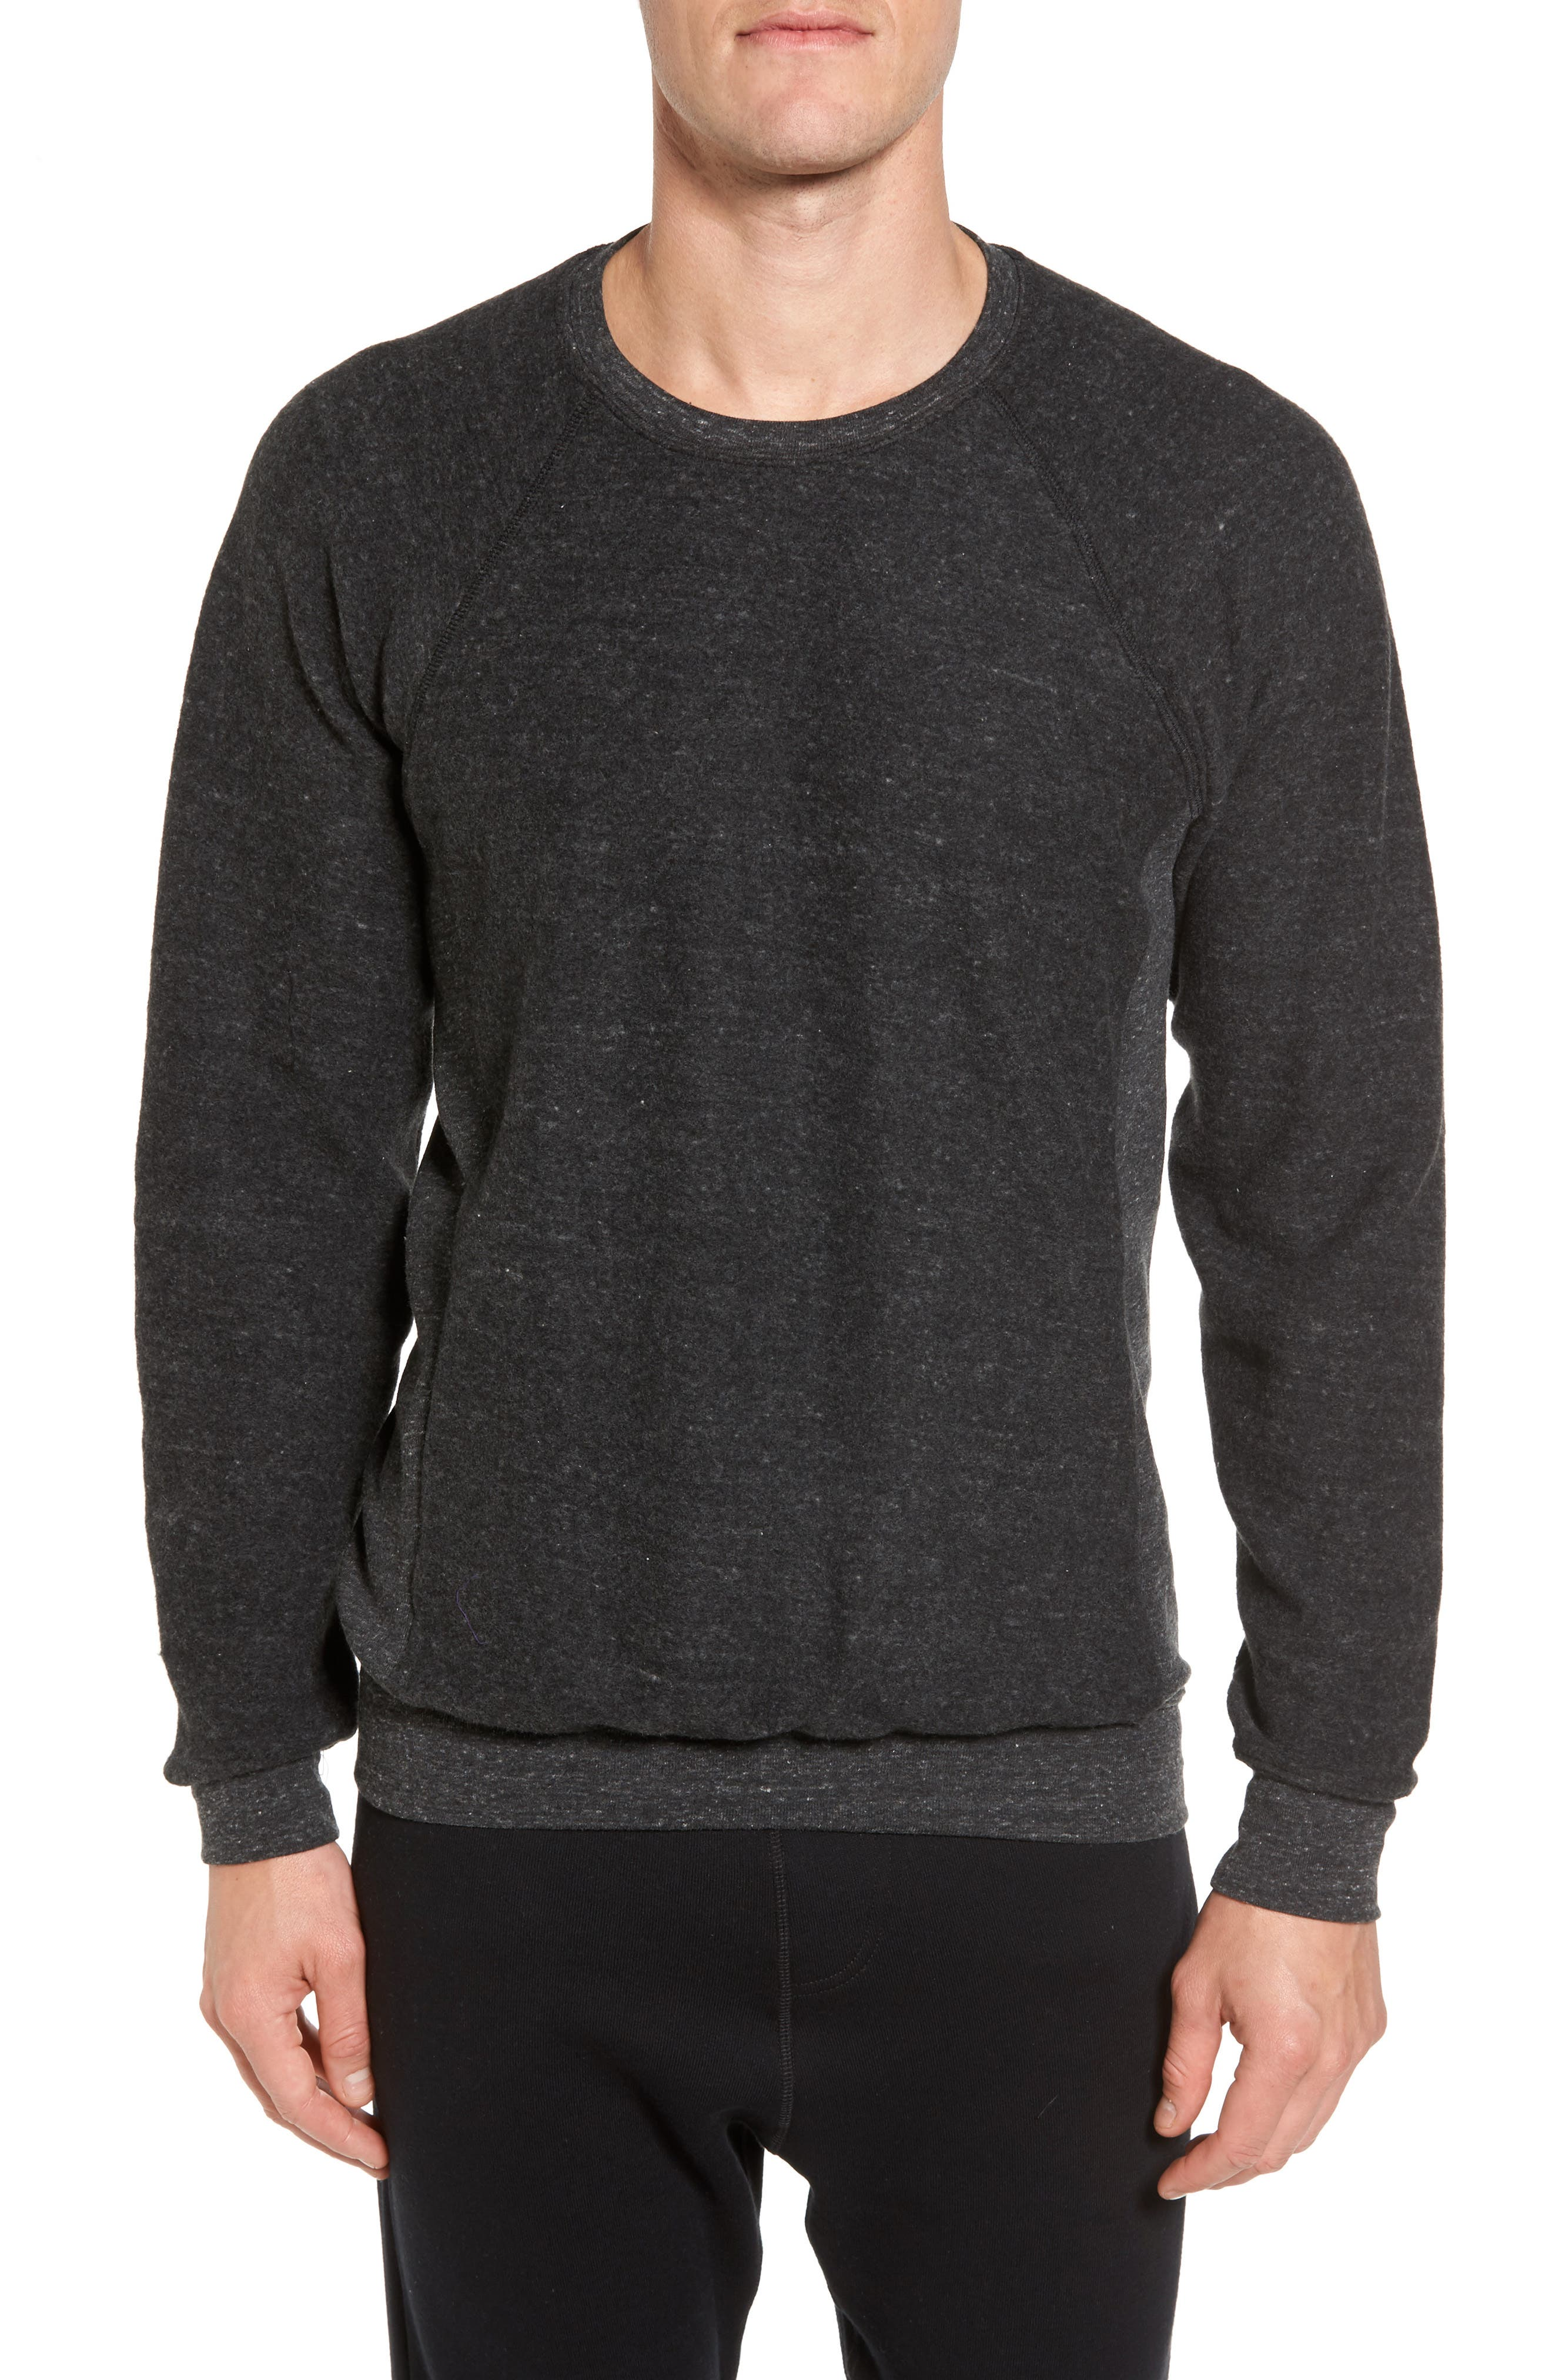 Alternate Image 1 Selected - Alo Relaxed Fit Felted Sweatshirt